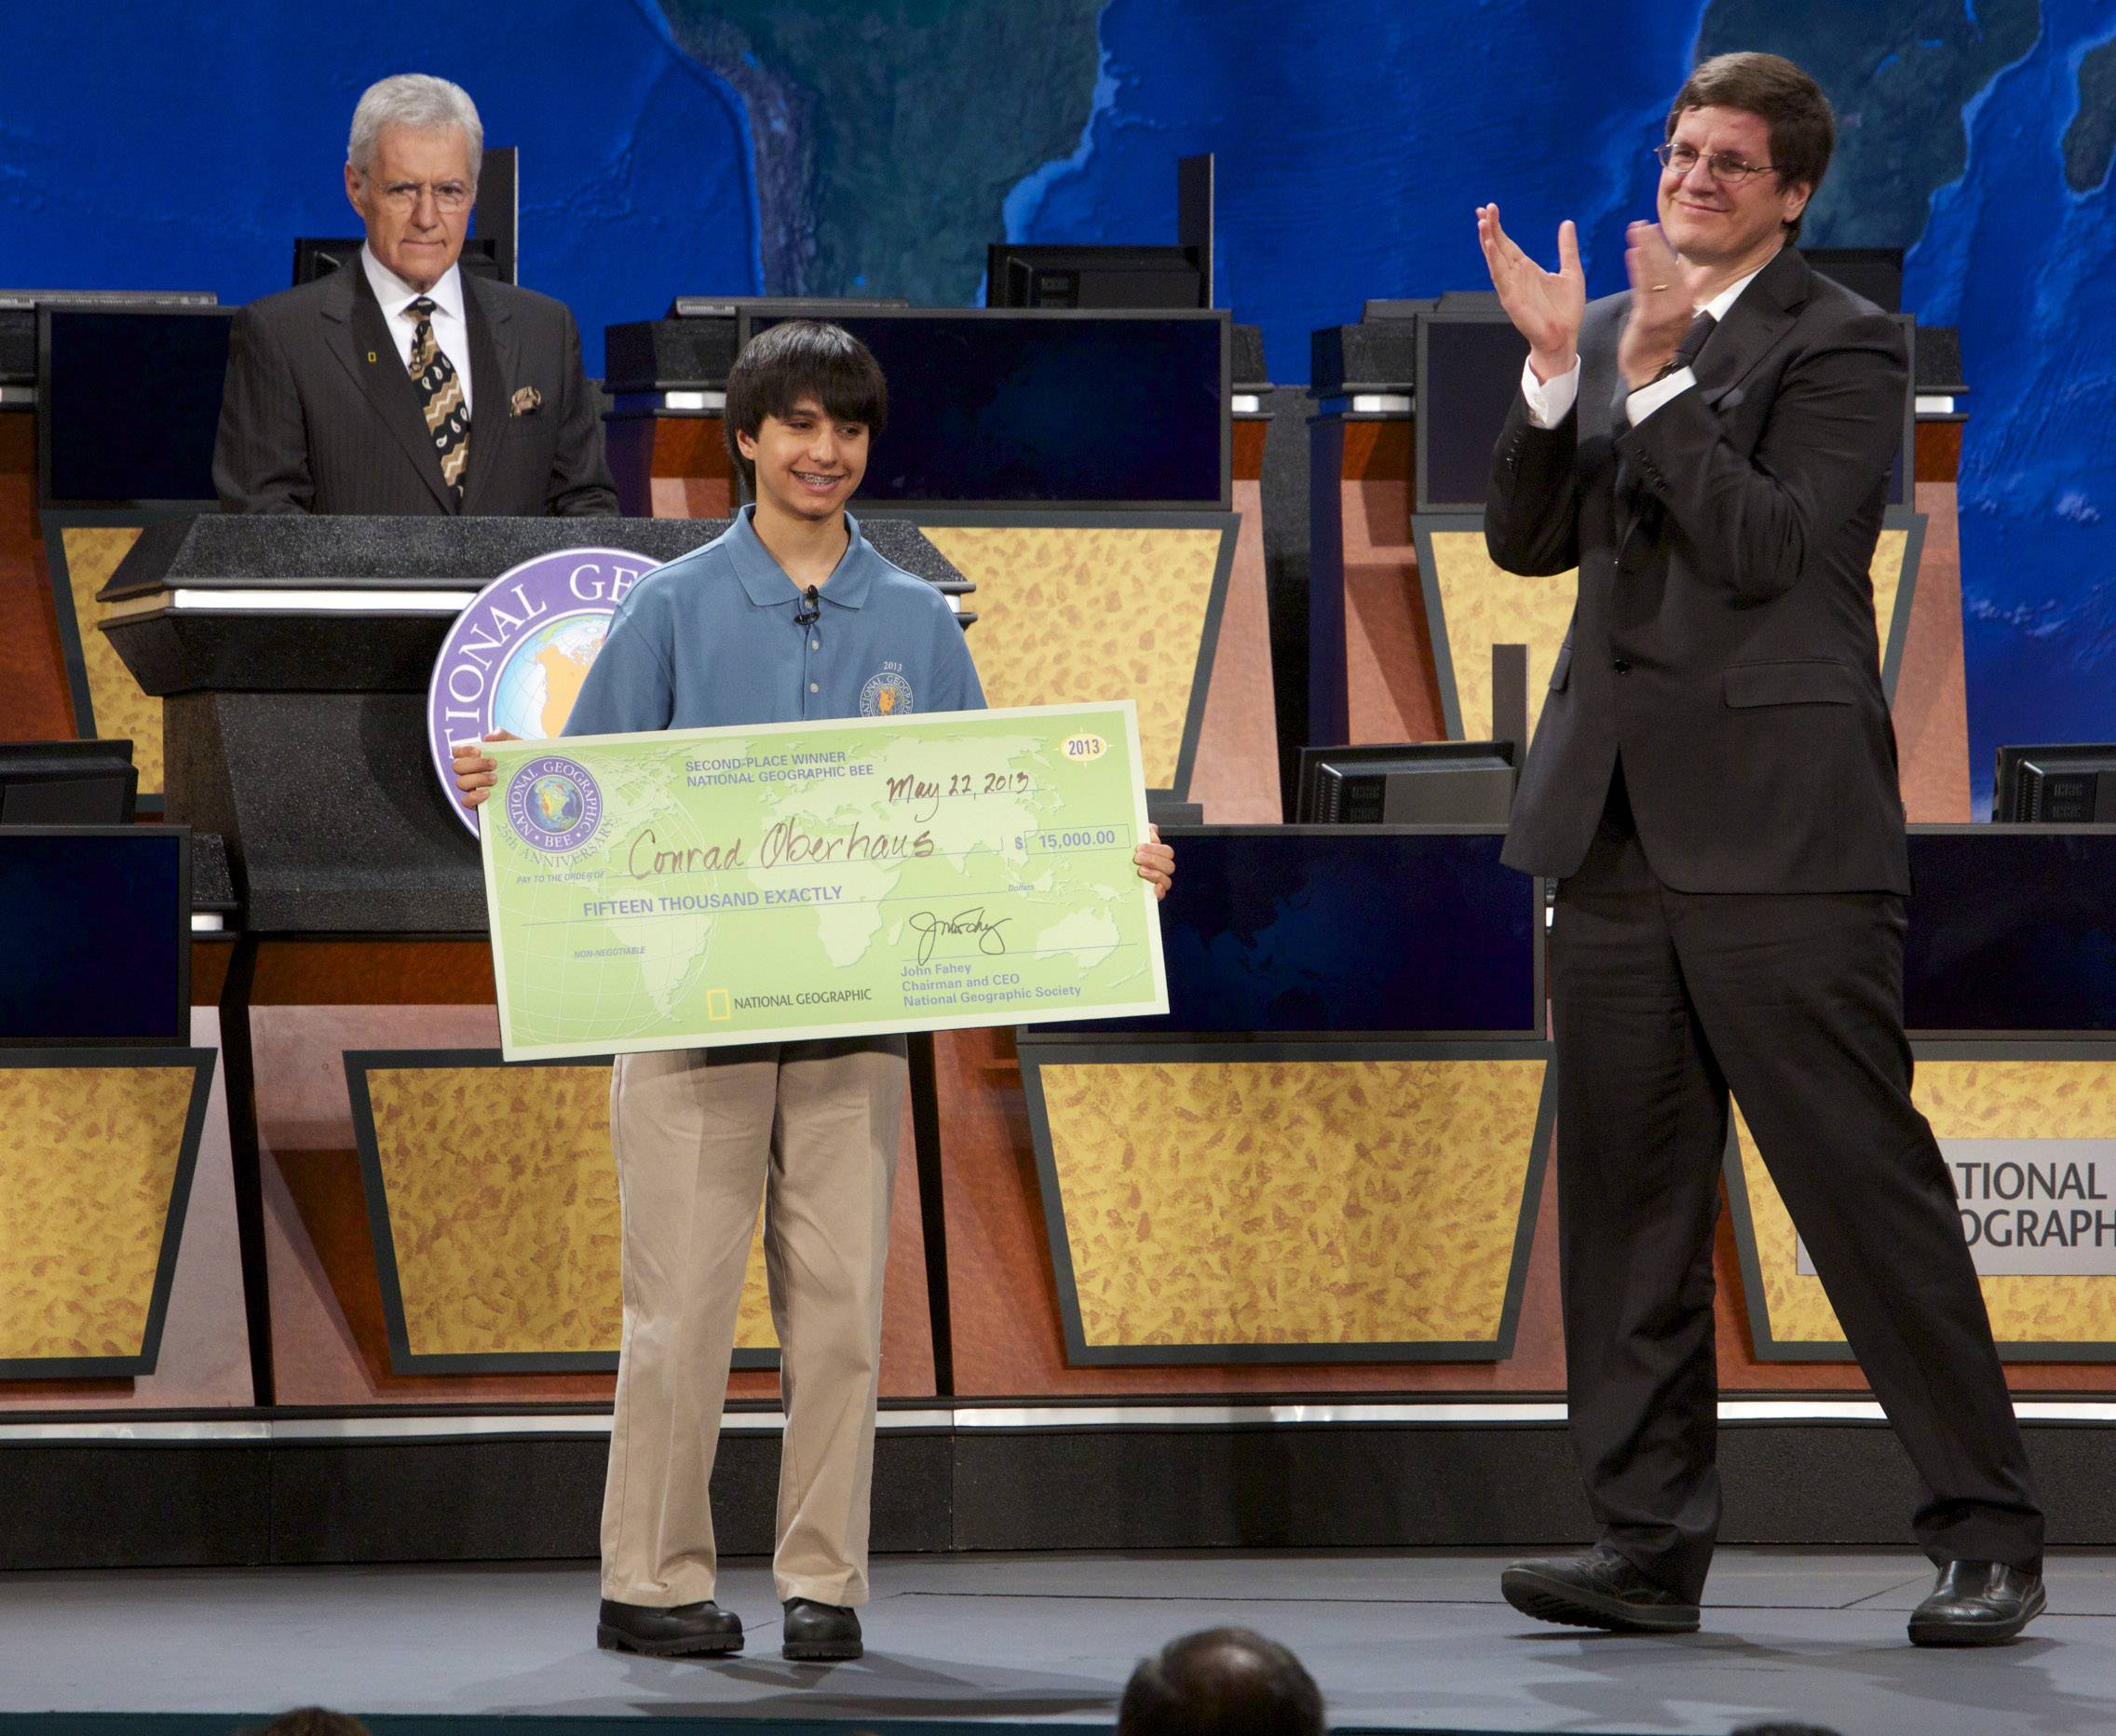 Lincolnshire boy 2nd in National Geographic Bee